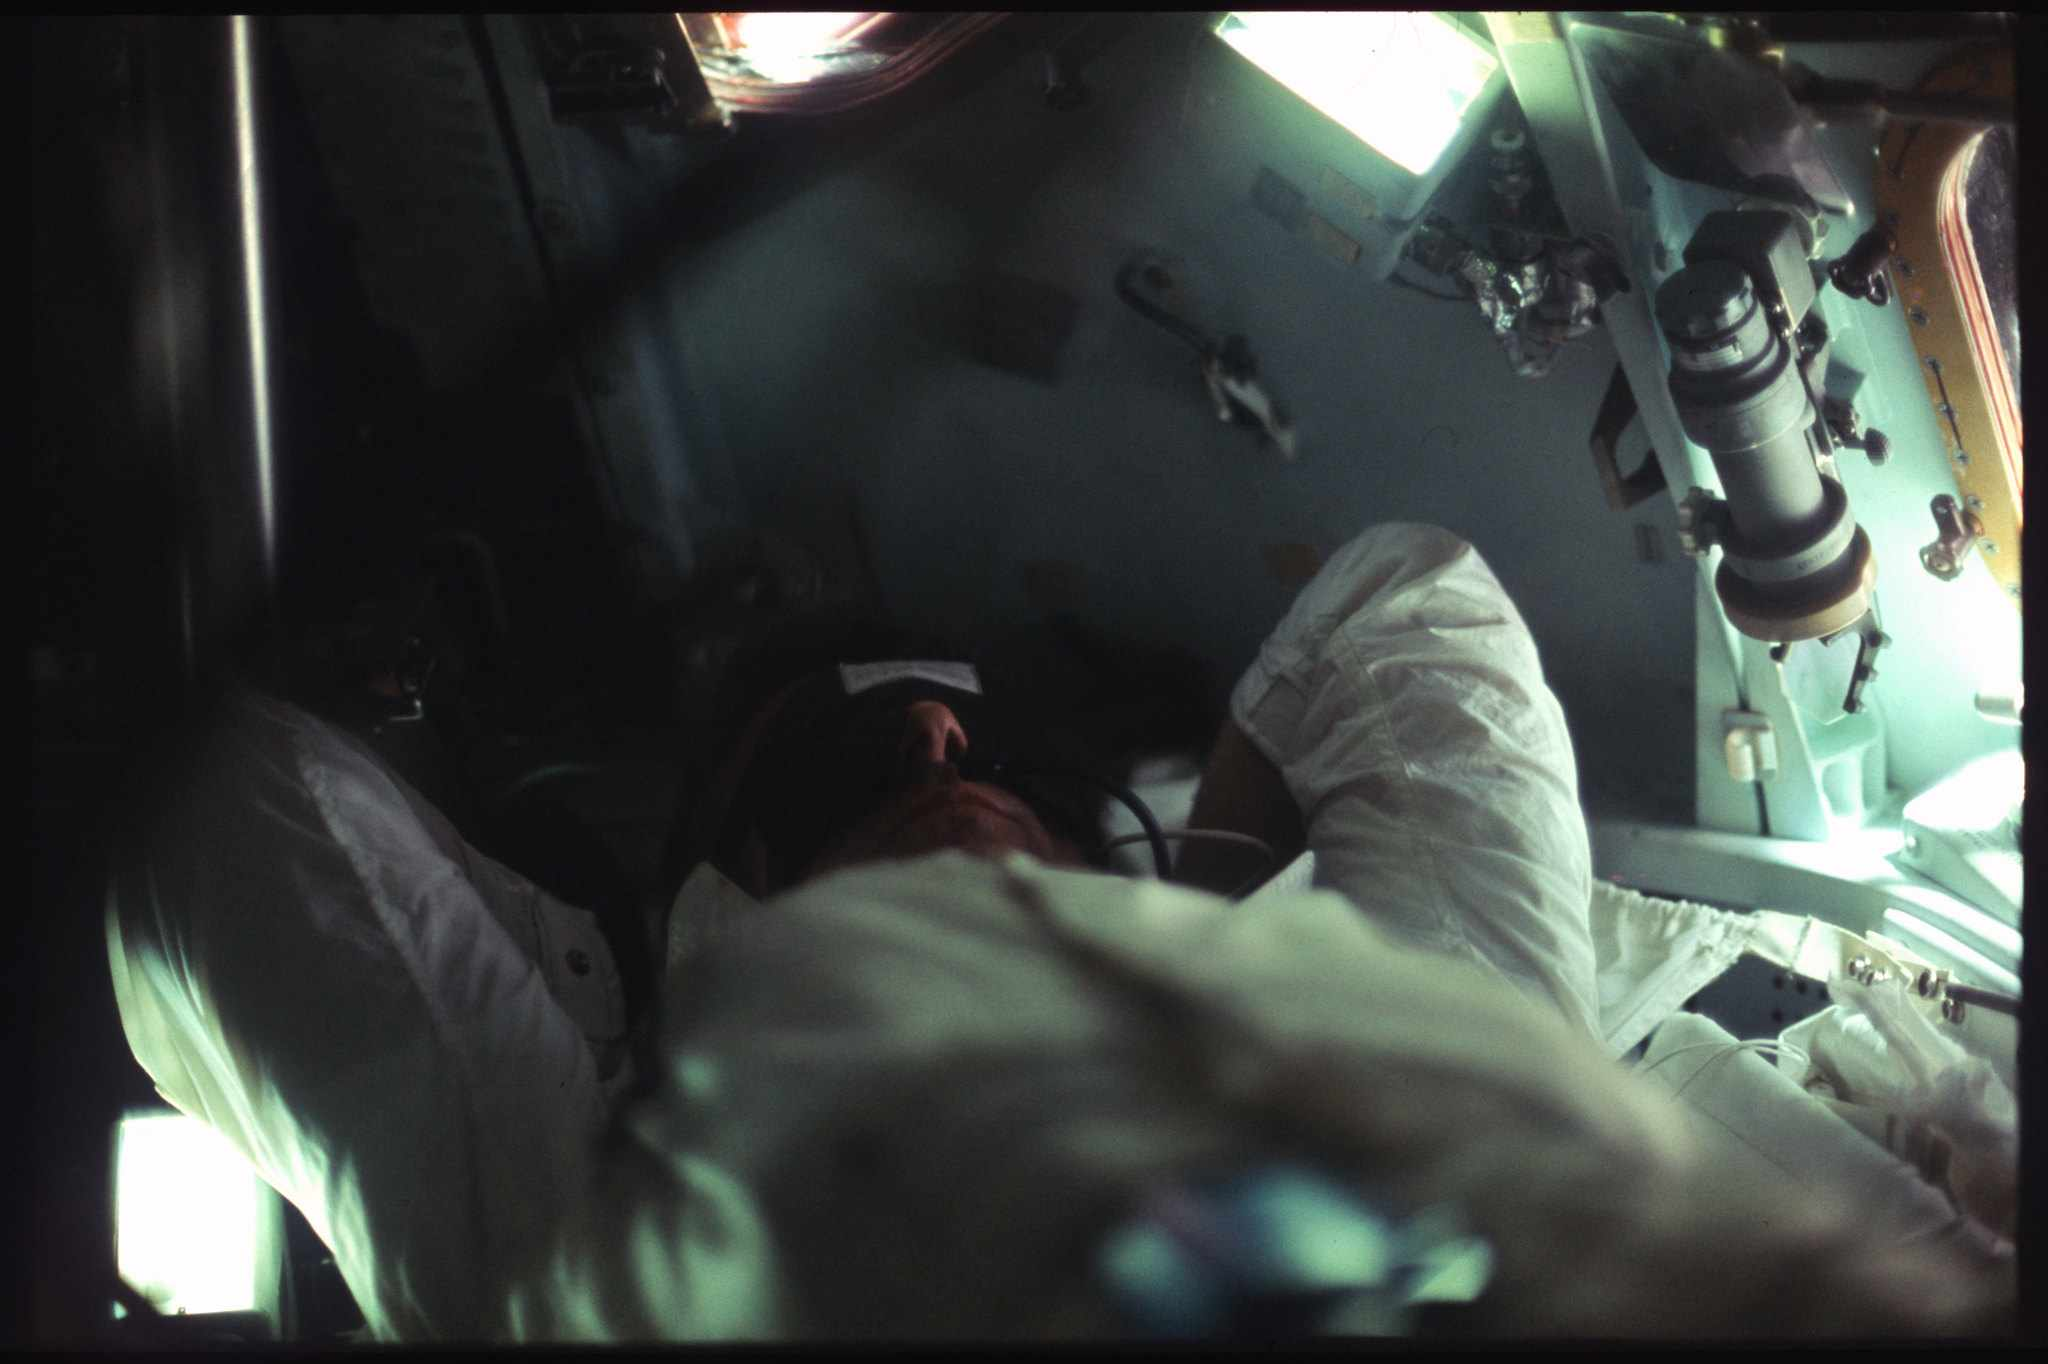 AS17-163-24119 - Apollo 17 35mm image from film magazine 163/TT - onboard